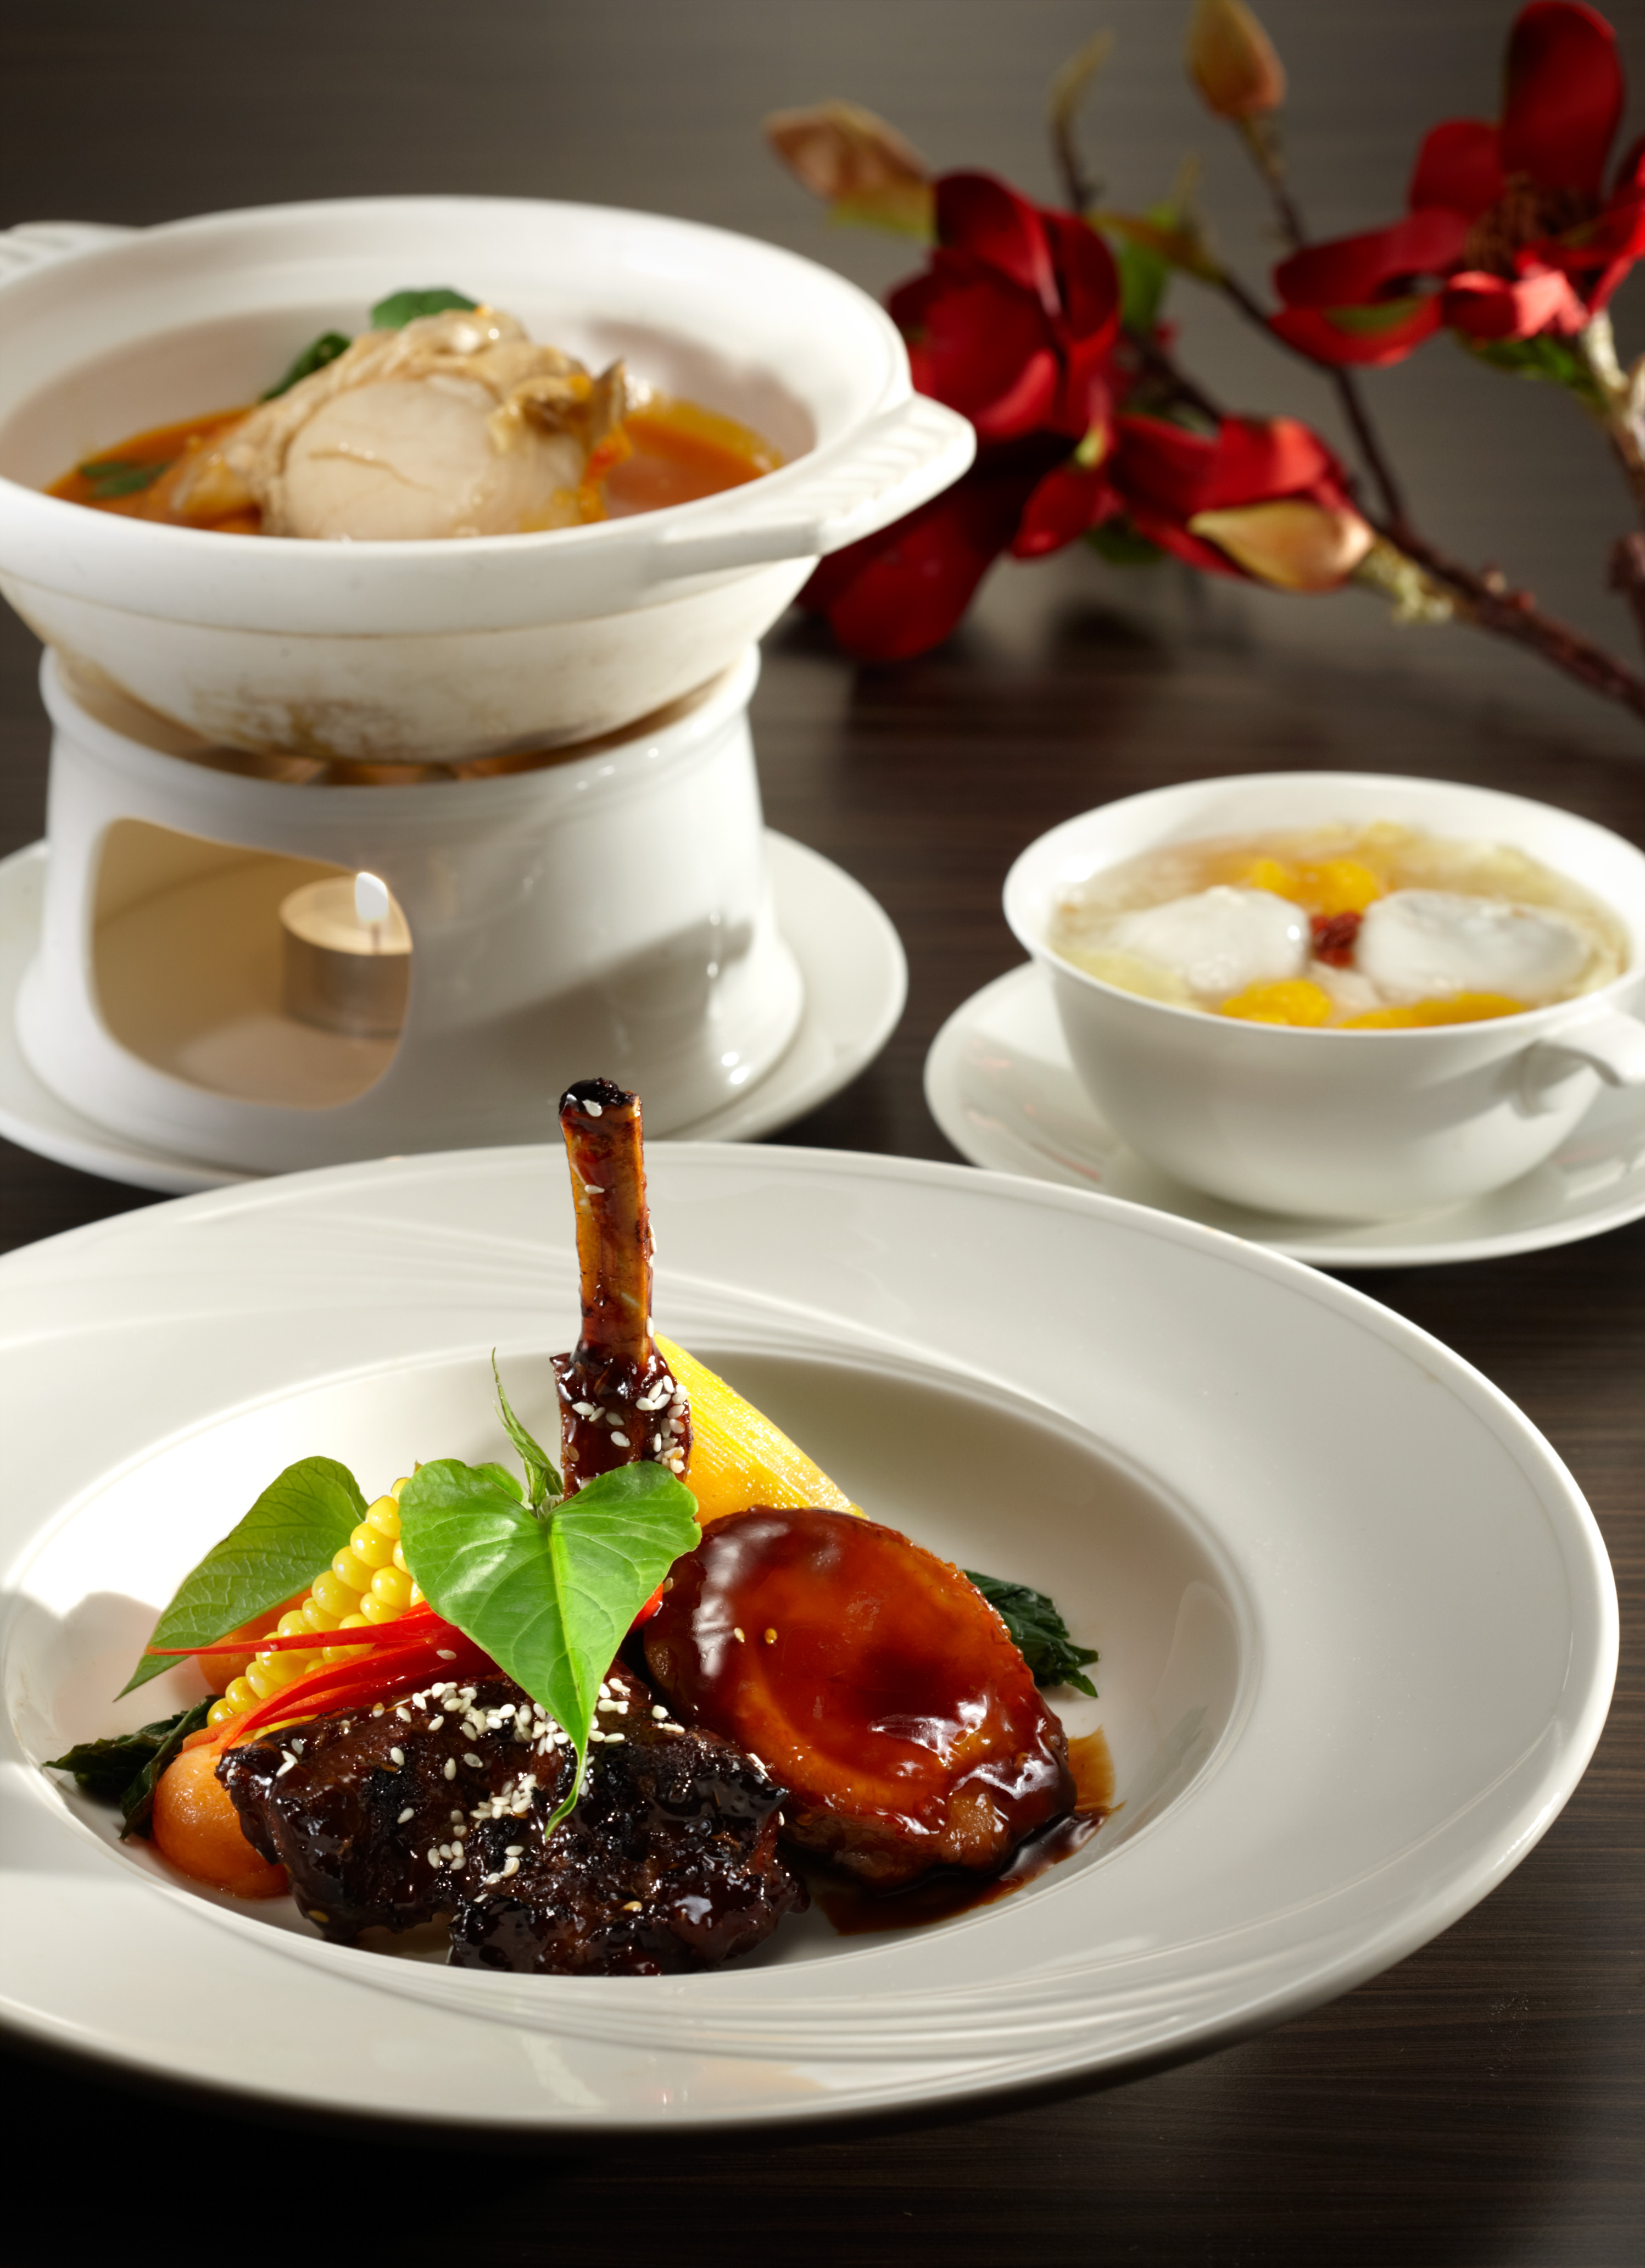 Westin Taipei brings dual feast with traditional Chinese dishes